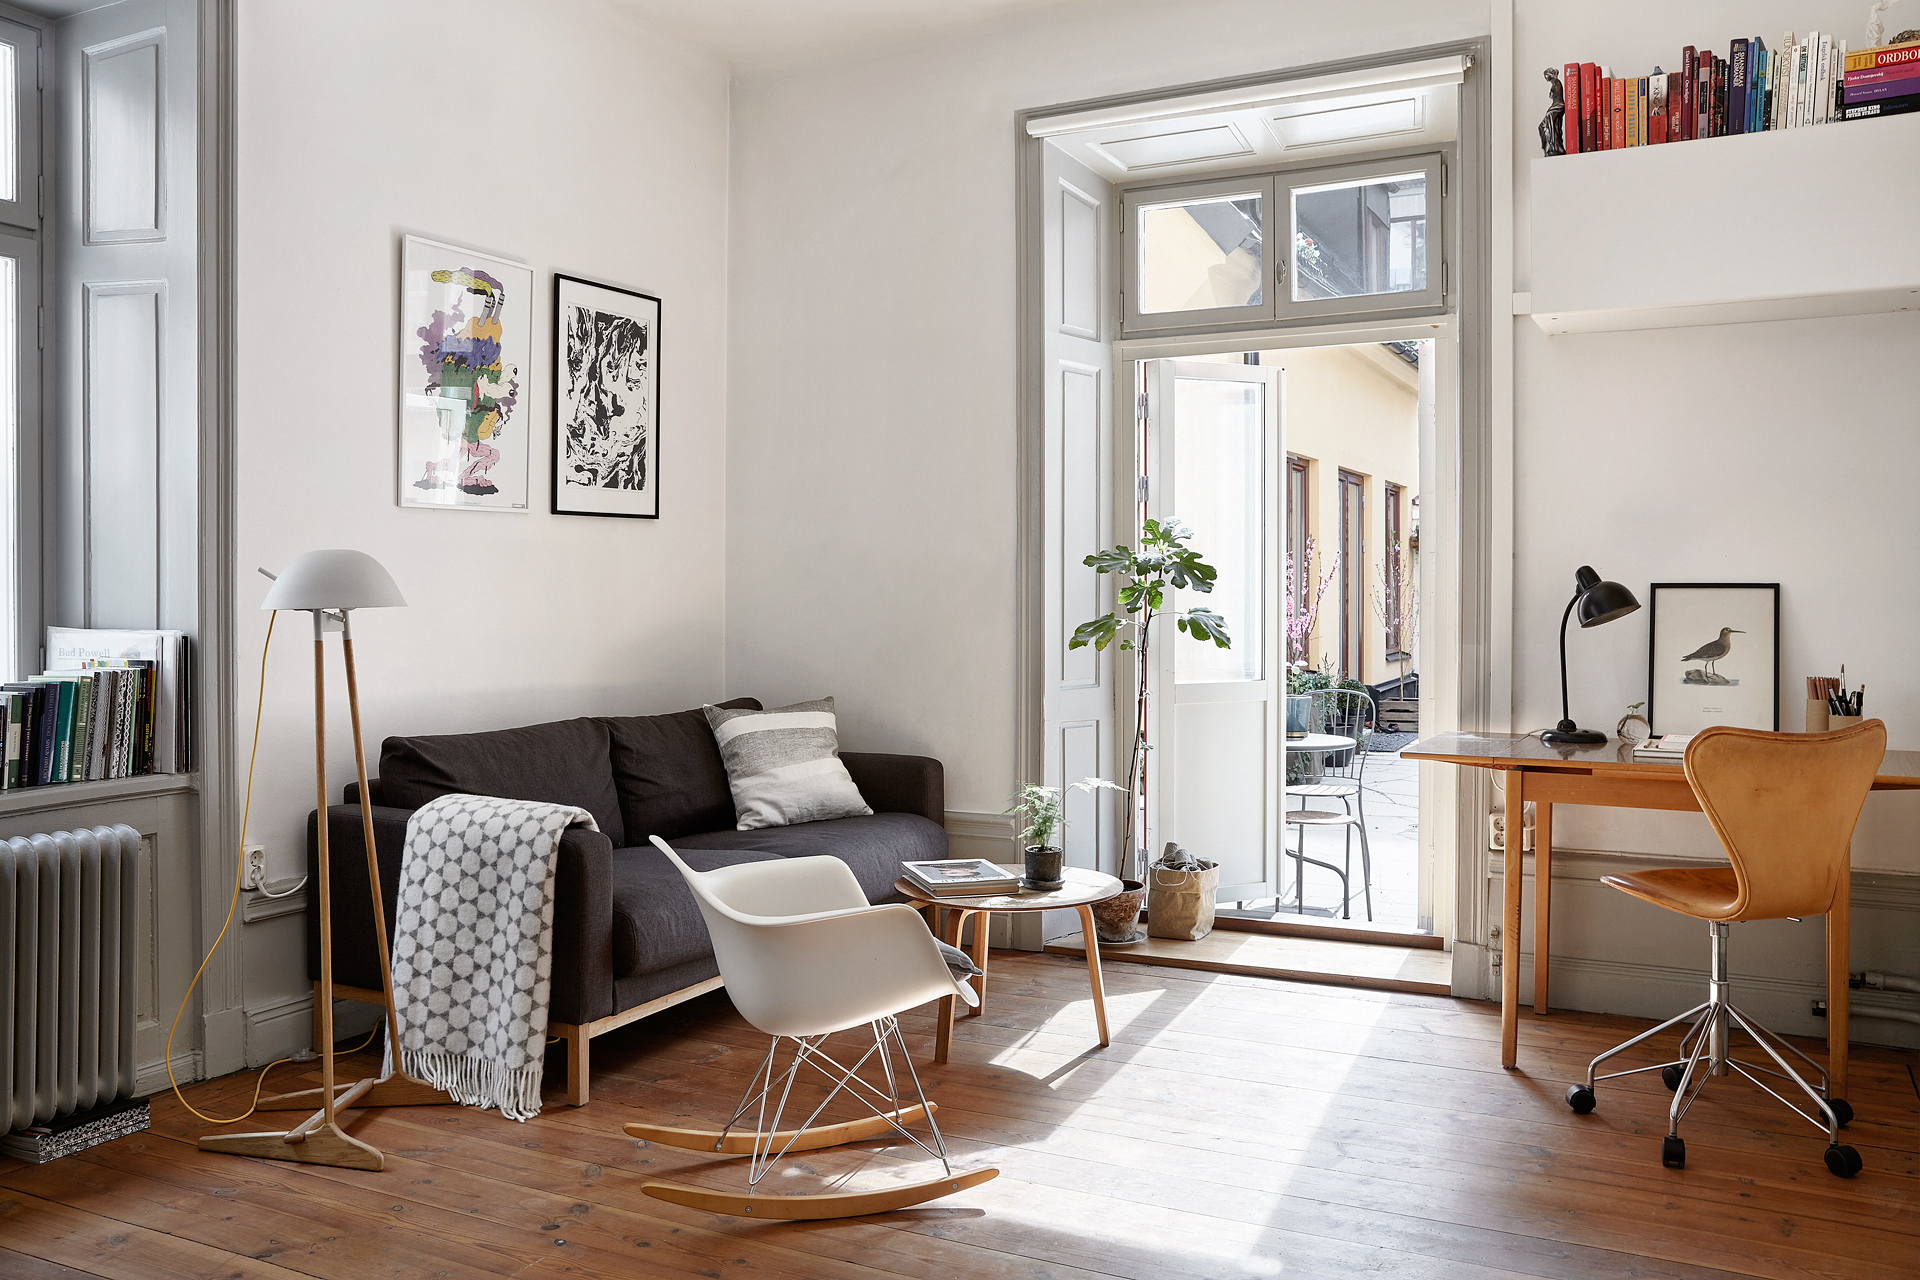 Eames Rocking Chair : The eames rocking chair is not just for babies and old people